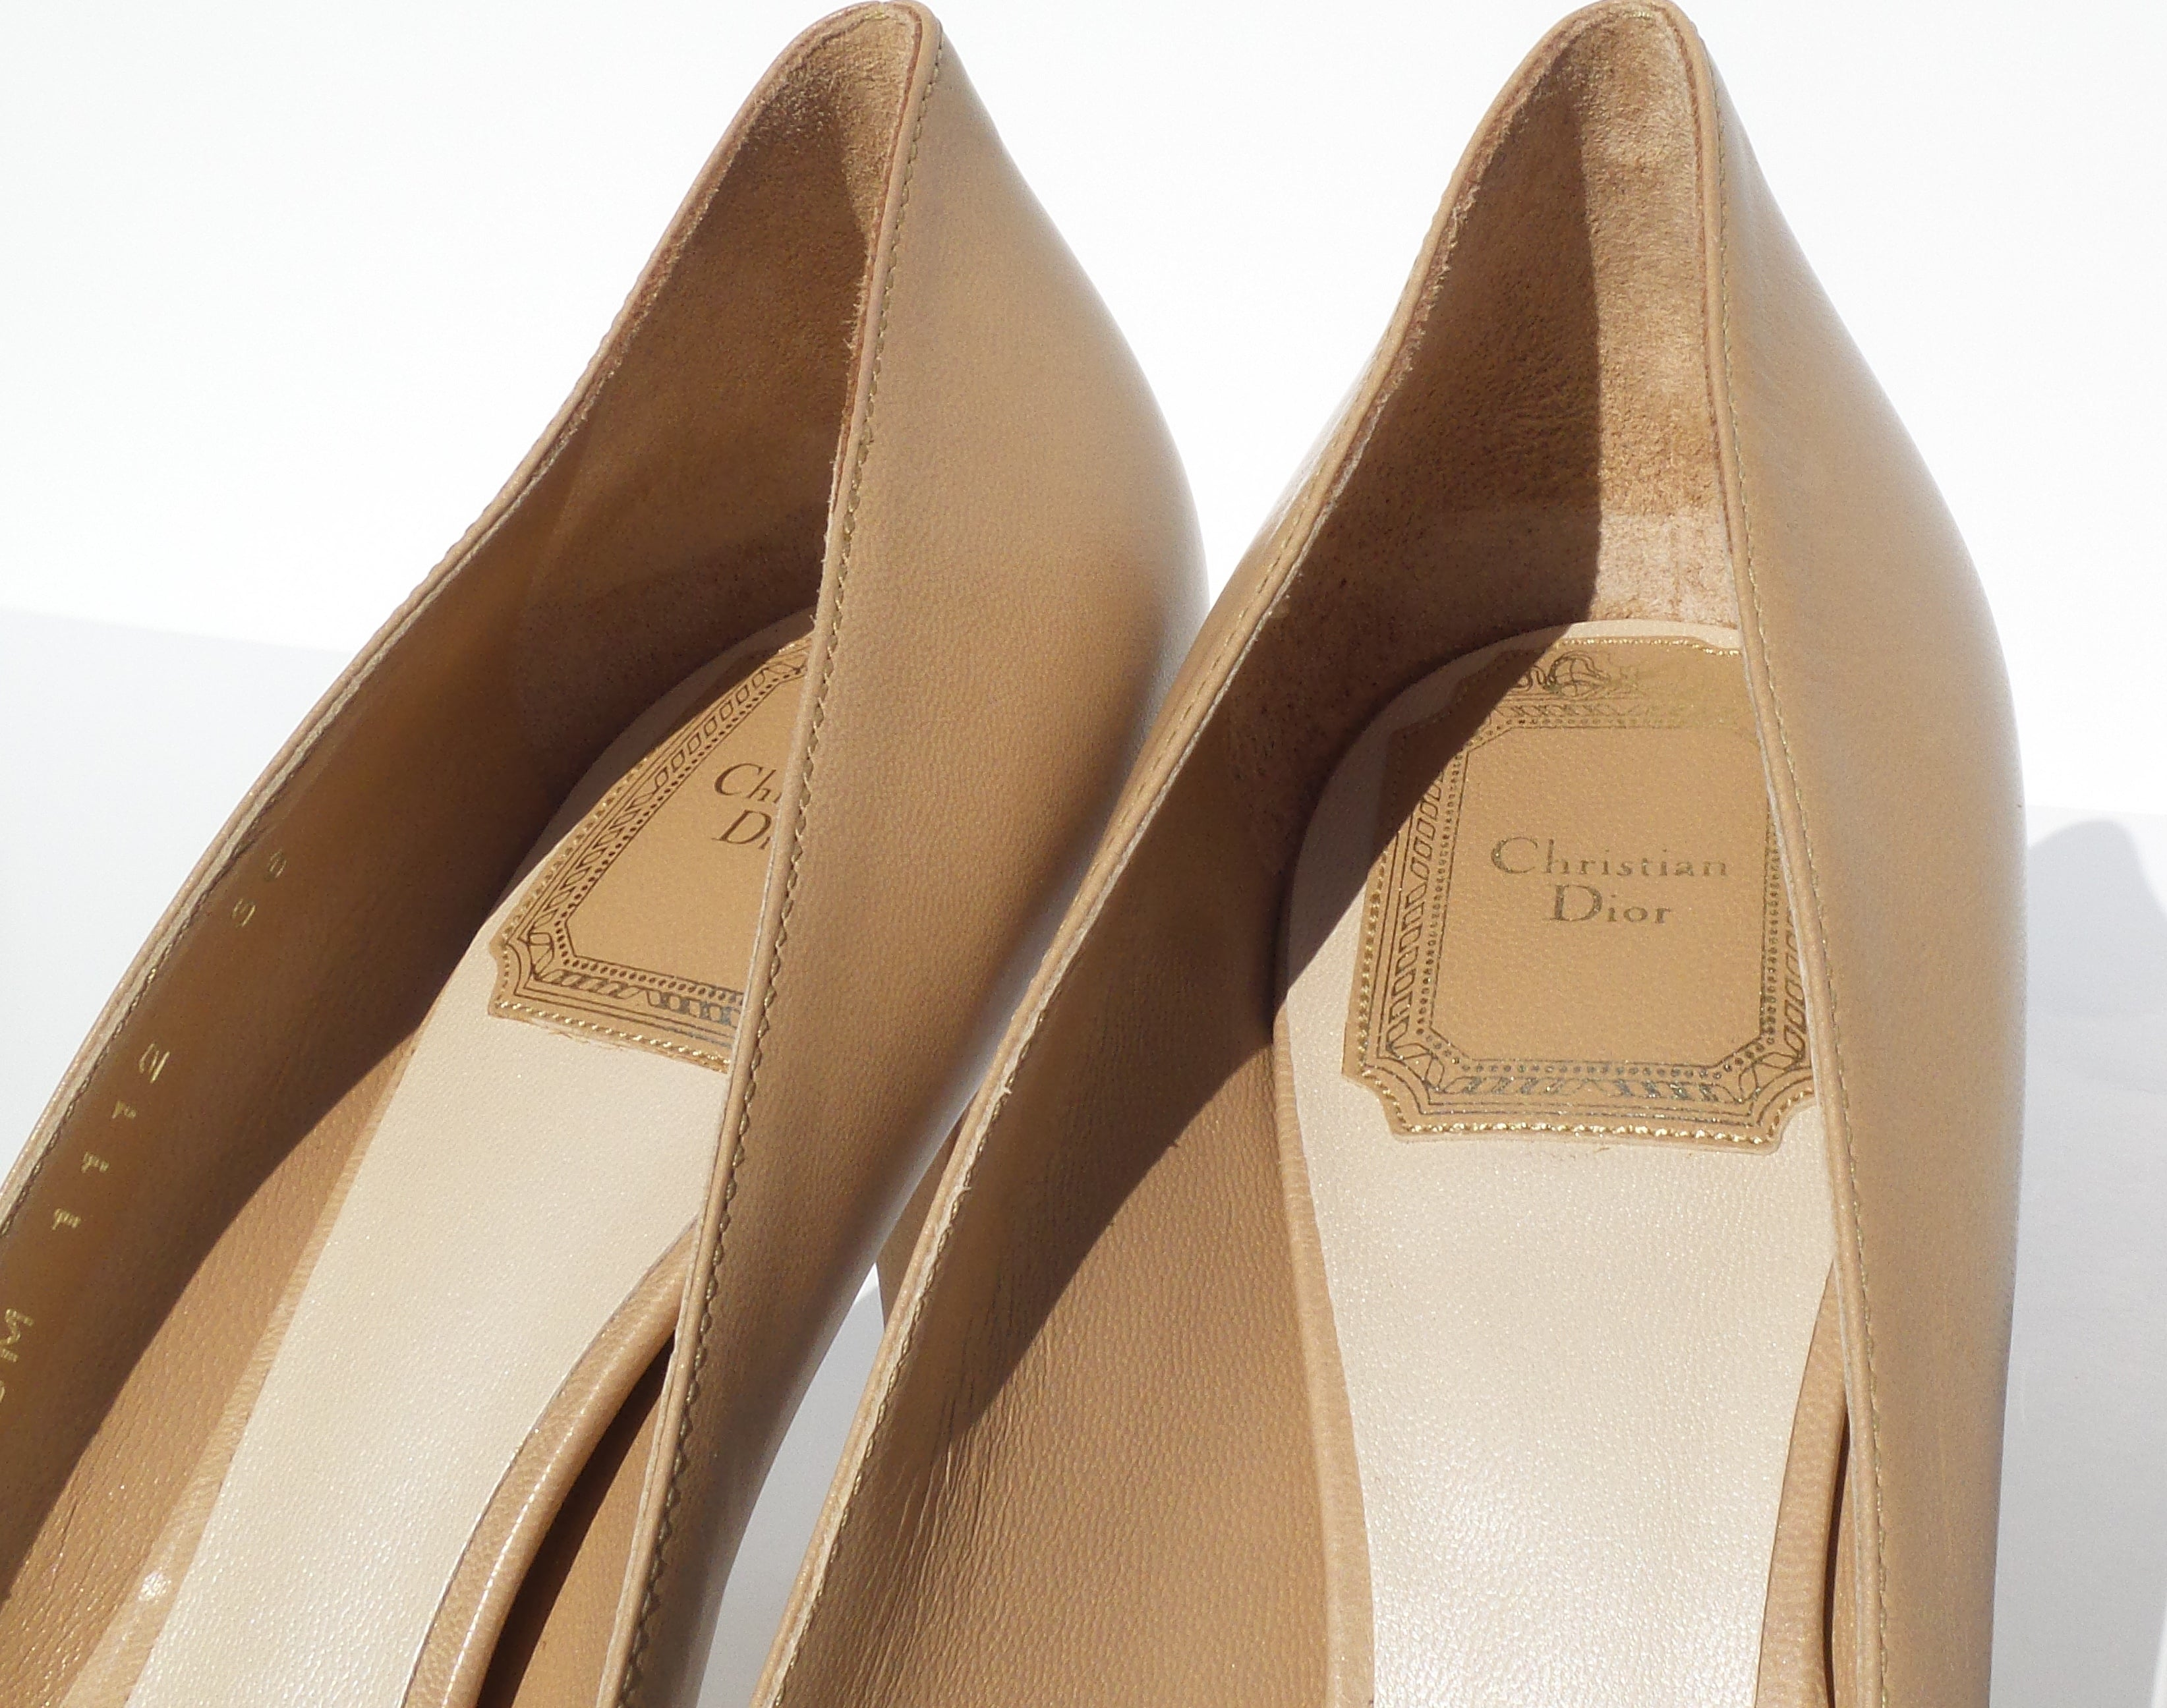 'Sold' CHRISTIAN DIOR Cherie 8cm Beige Tan Nude Leather Pointy Toe Classic Pumps 36 NWD